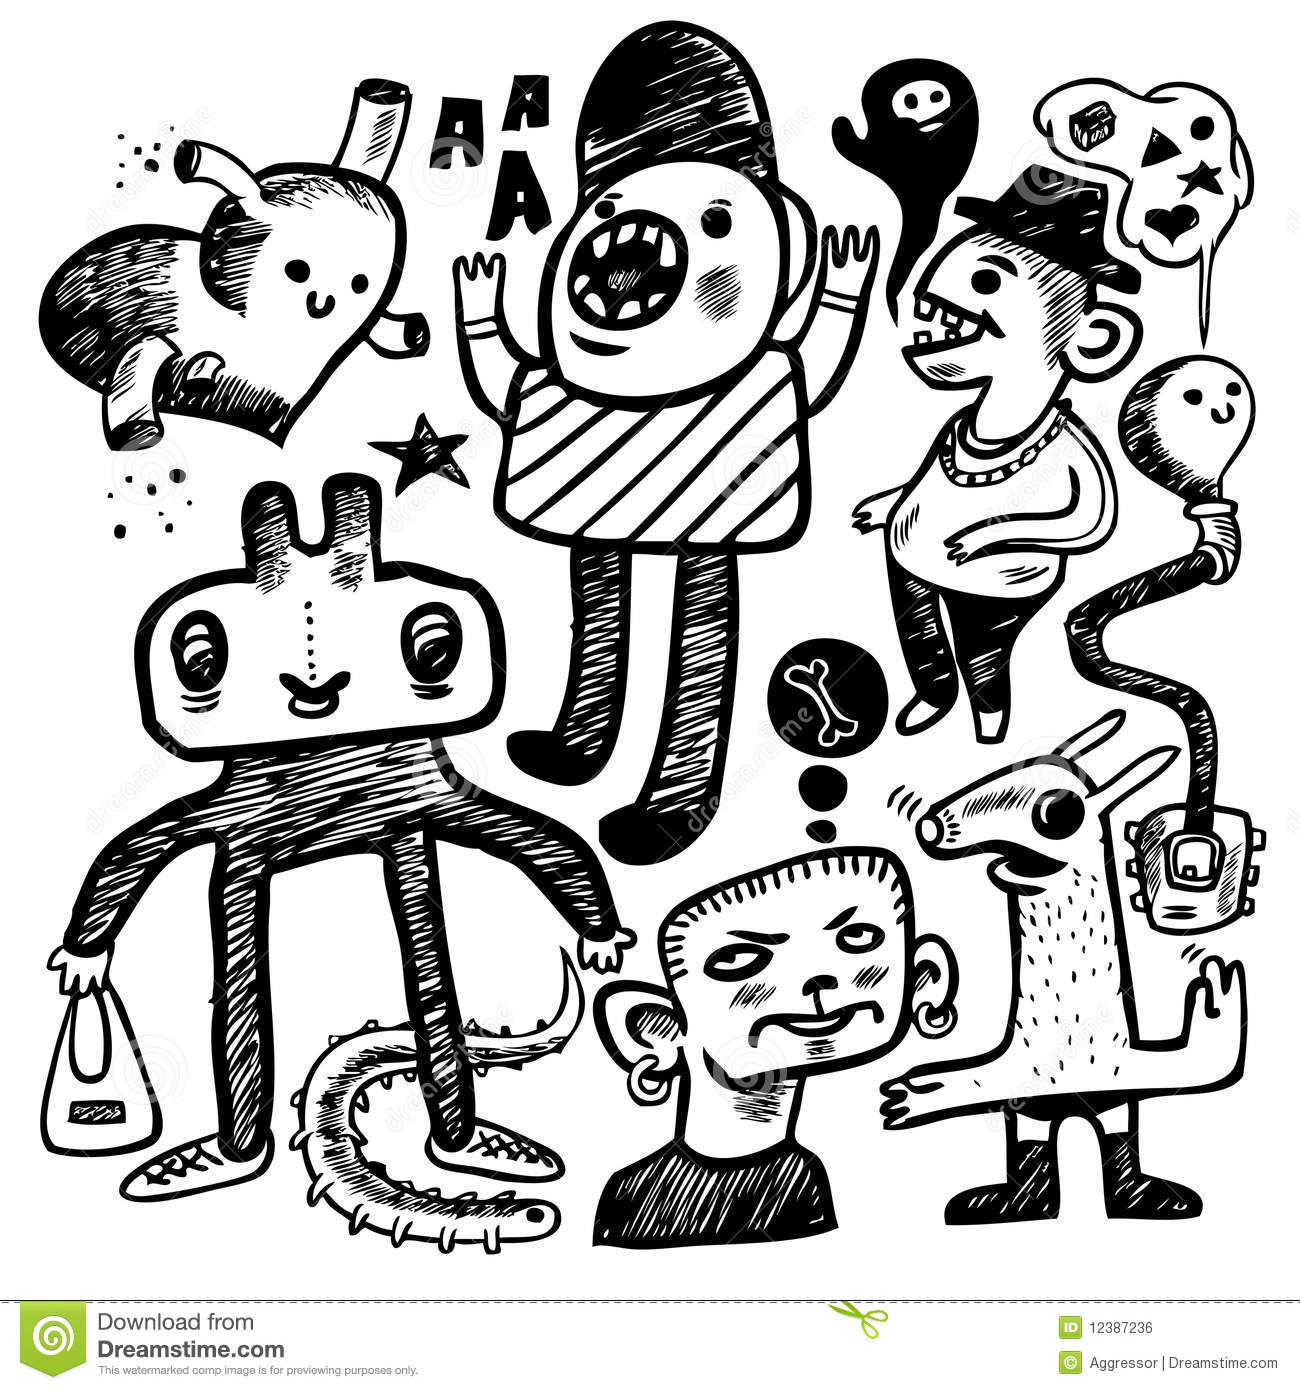 Hand Drawn Doodles Royalty Free Stock Image Image 12387236